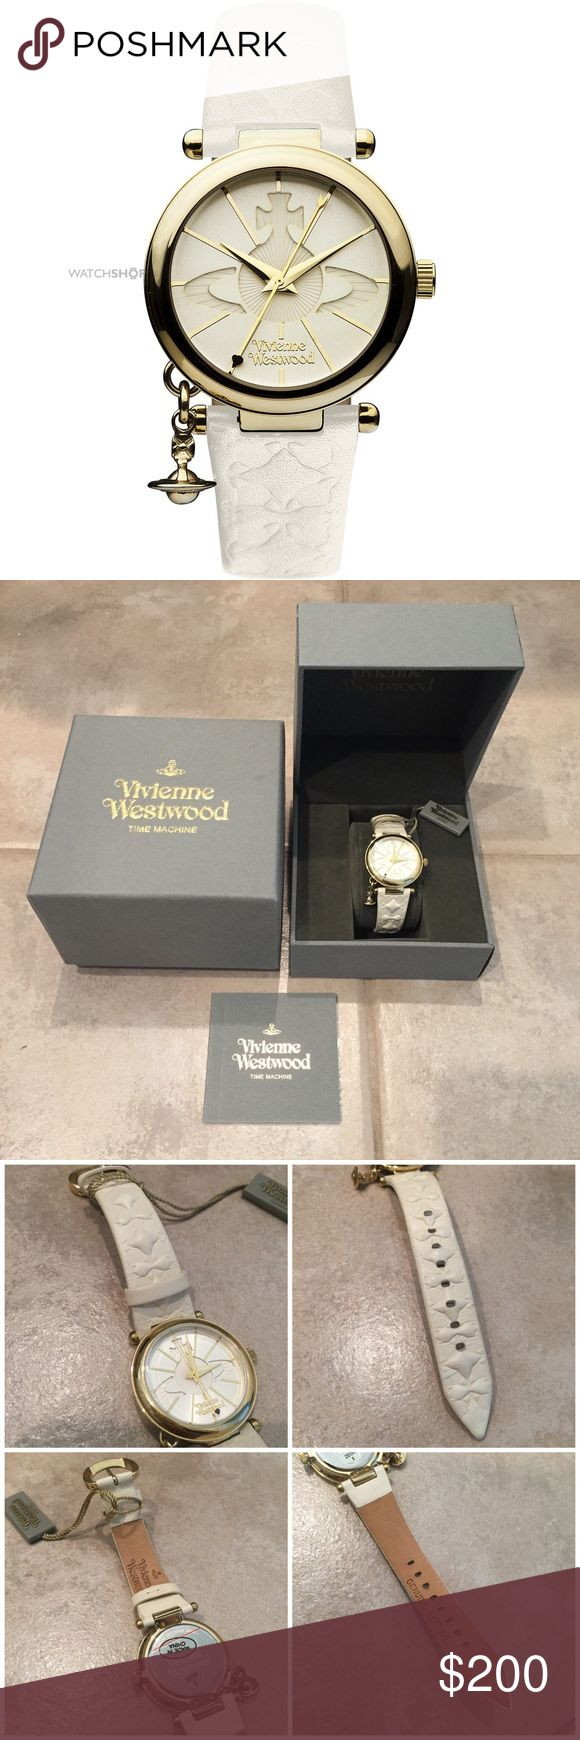 💯Vivienne Westwood Round Gold Leather Watch🌟 💯Authentic Vivienne Westwood    Gently used 2 times    Color: White & Gold    Battery Functioned    Comes with Full set    No Trade    PRICE IS FIRM💎DO NOT OFFER    All Sales Are Final    PP Price $160 Vivienne Westwood Accessories Watches